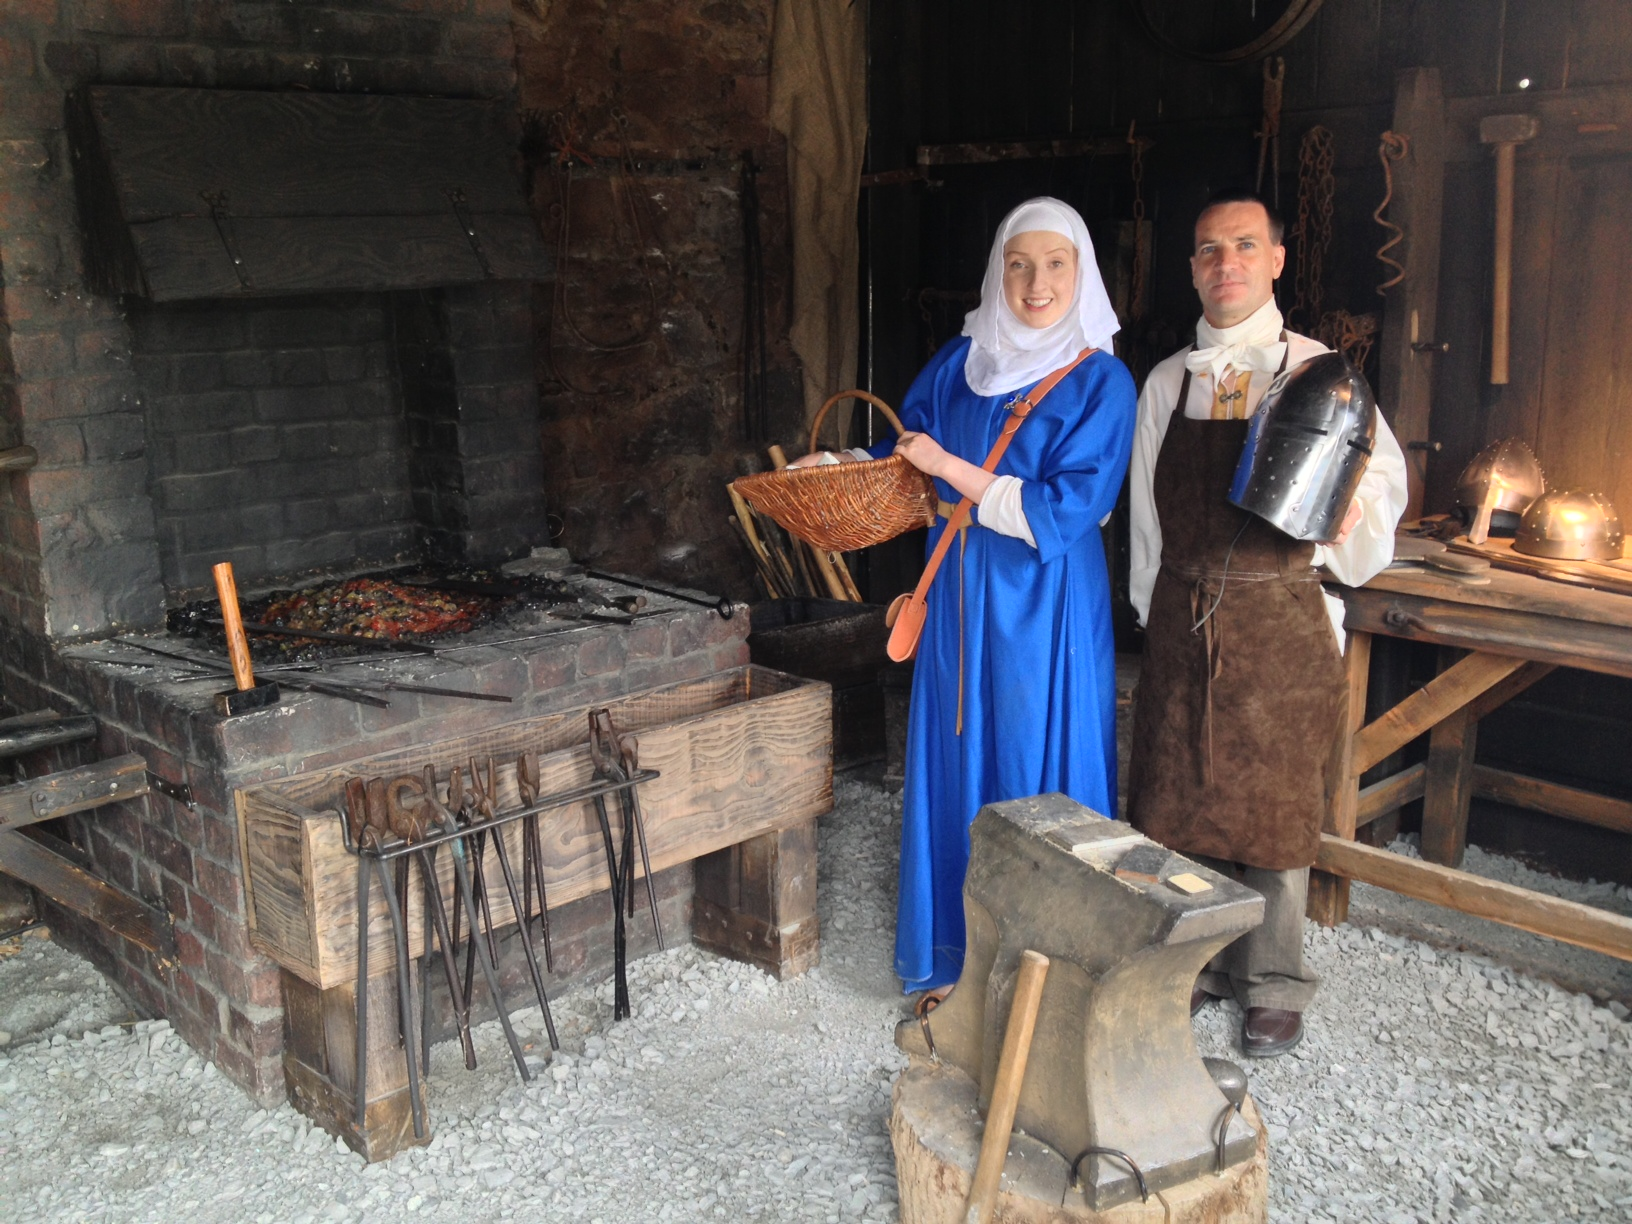 A bit of living history with costumed guides.